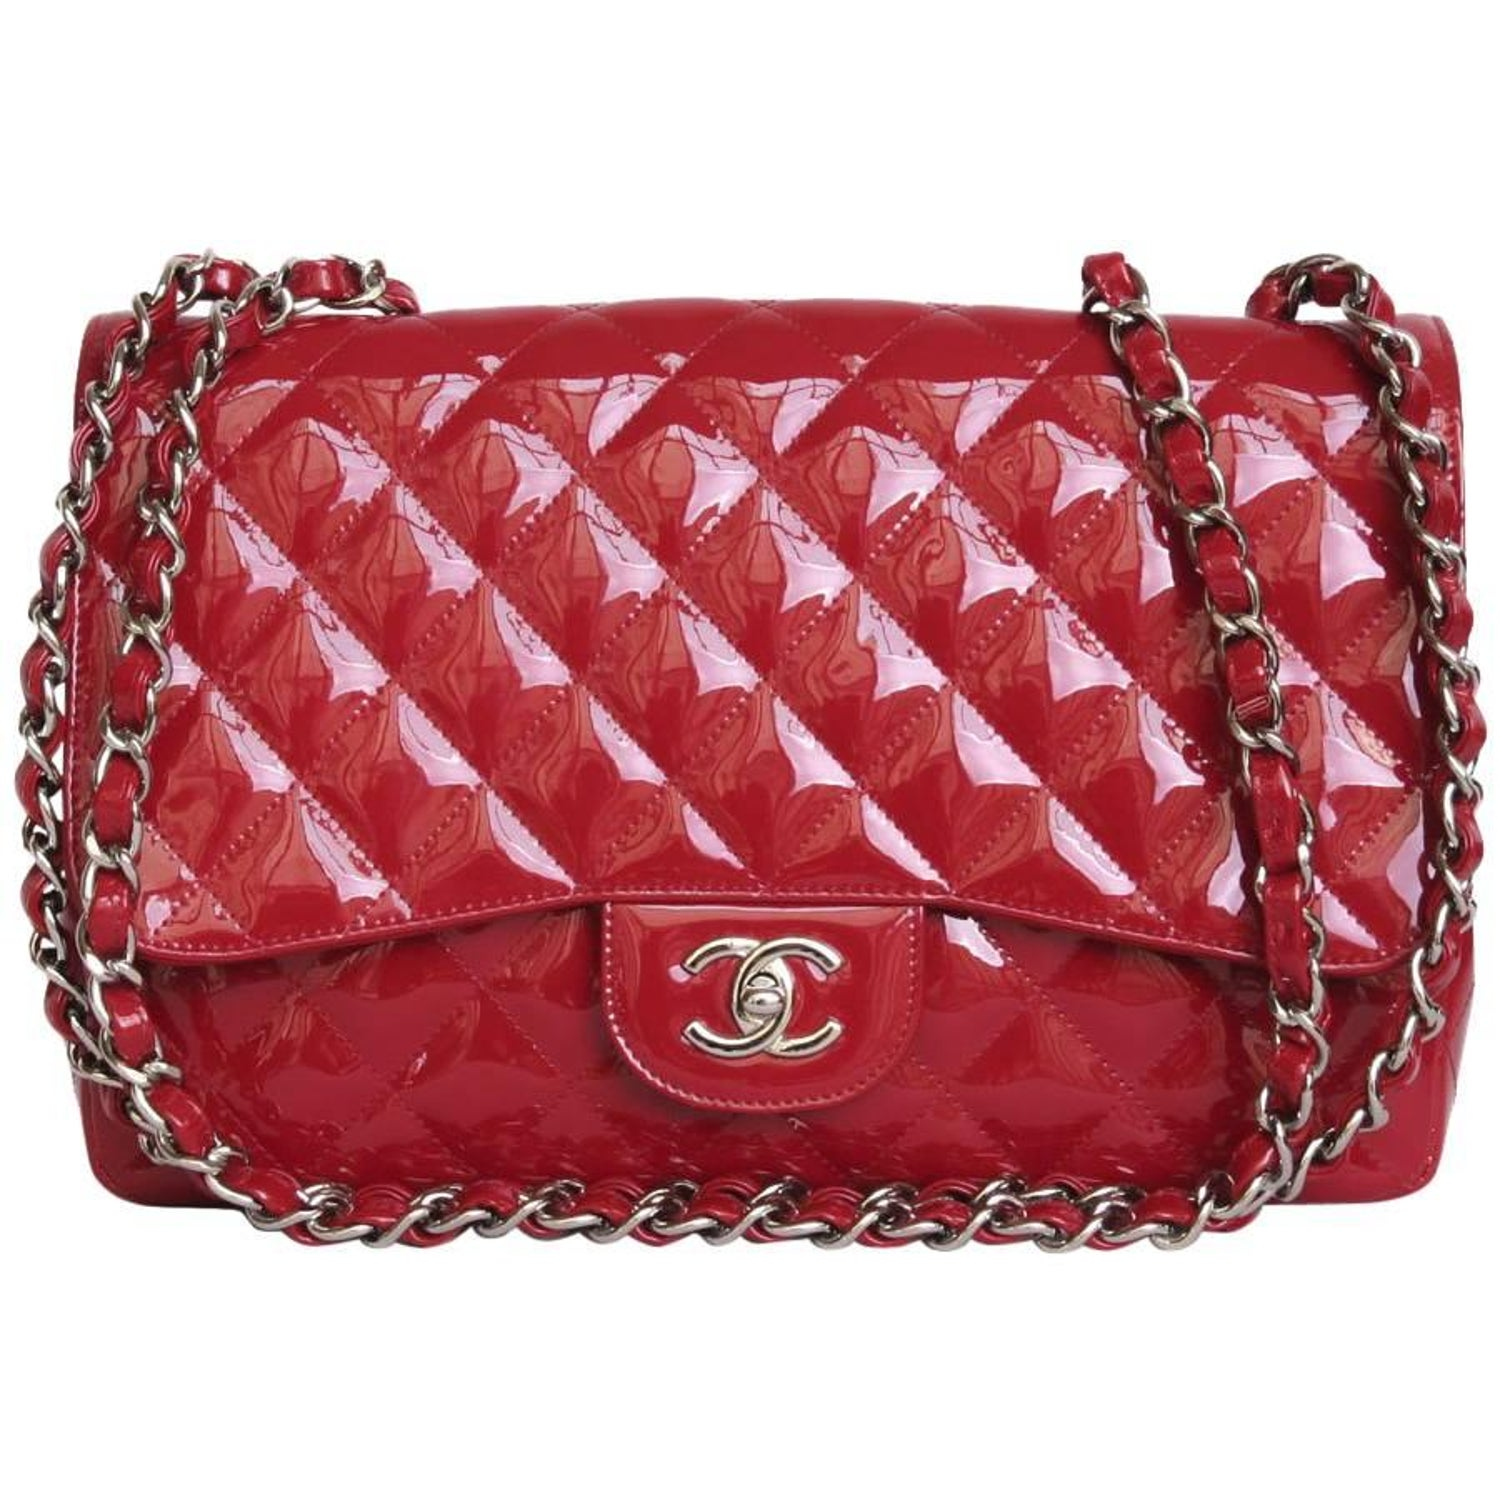 afdf3d6d636f CHANEL 'Jumbo' Flap Bag in Red Patent Leather at 1stdibs